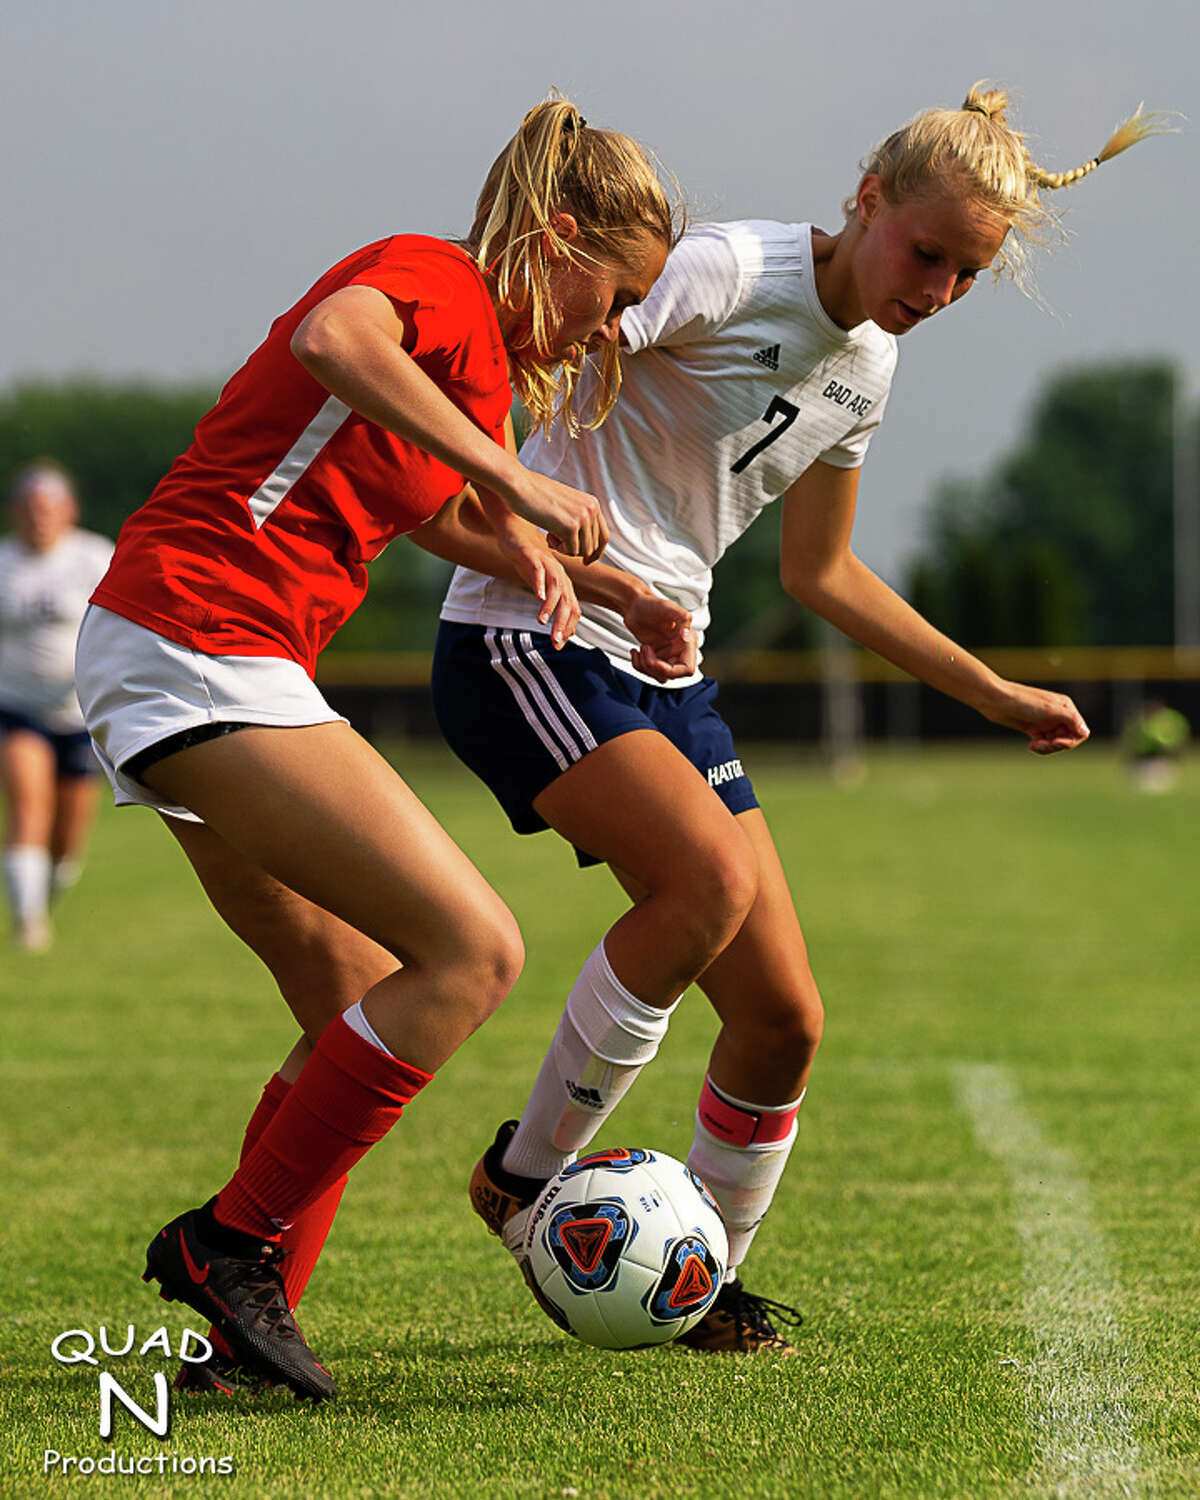 The Bad Axe girls soccer team captured its first-ever regional championship with a 2-1 victory over Laingsburg on Thursday evening at Saginaw Valley Lutheran High School. The Hatchets will face Royal Oak Shrine Catholic in the Division 4 state semifinals on Wednesday, June 16, at Athens High School in Troy.